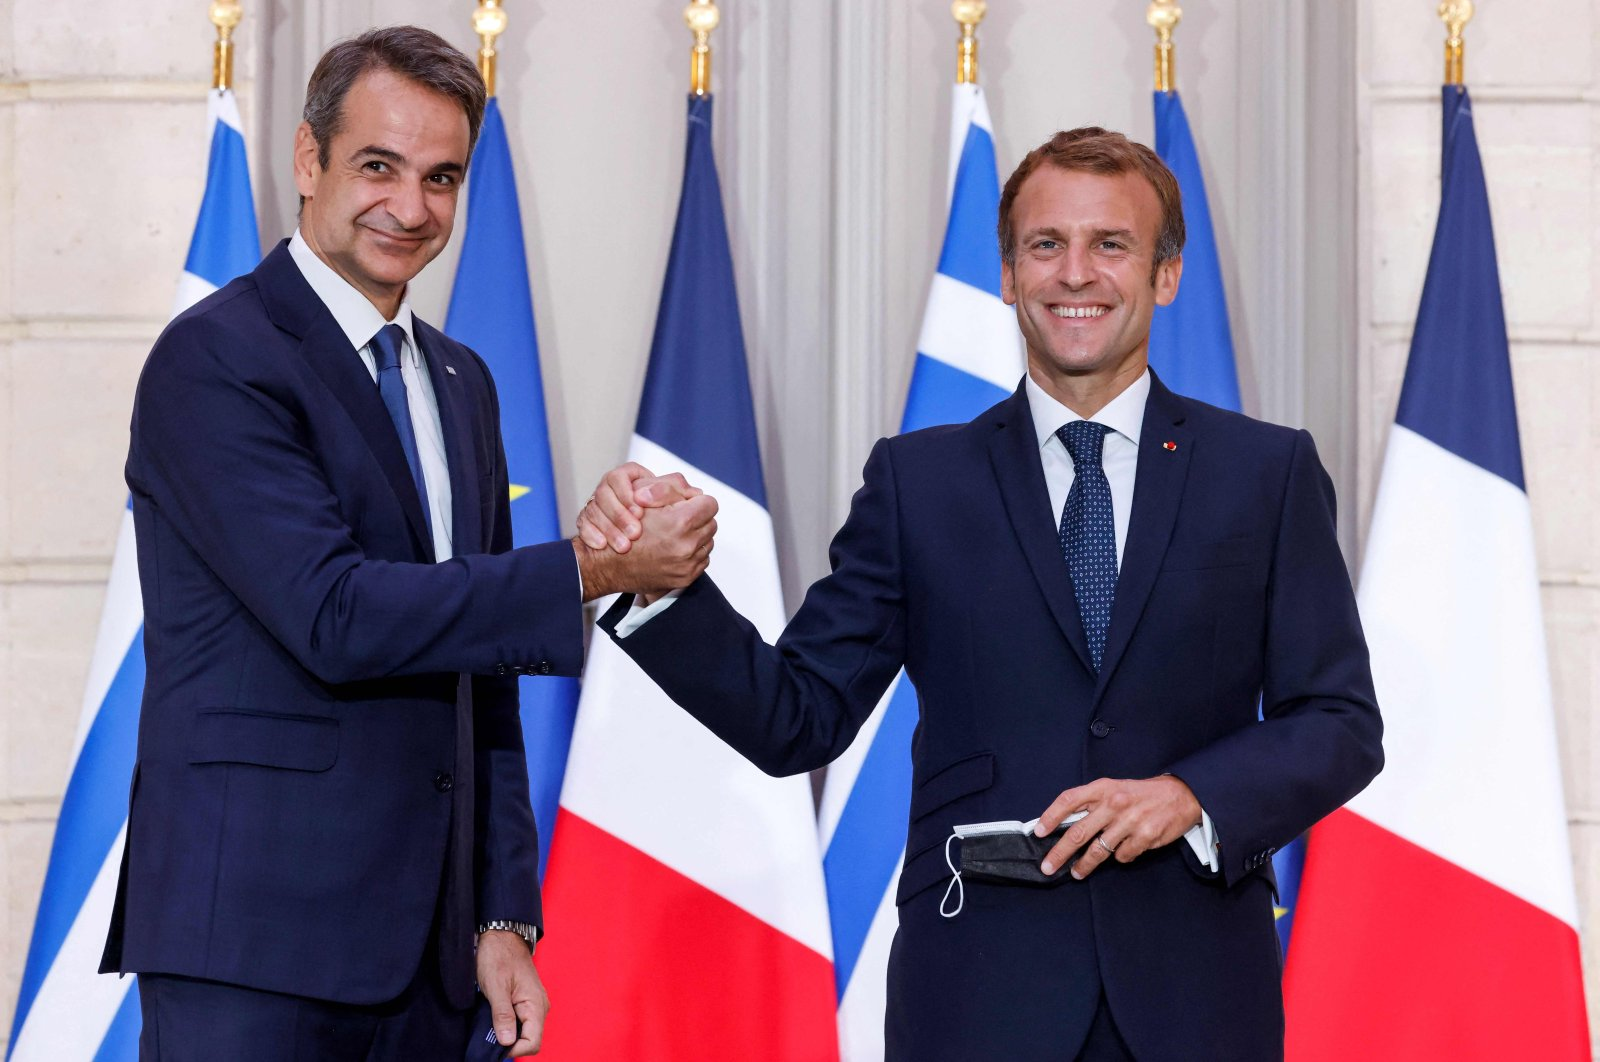 Greek Prime Minister Kyriakos Mitsotakis (L), shakes hands with French President Emmanuel Macron following a signing ceremony of a new defense deal at The Elysee Palace, Paris, France, September 28, 2021. (AFP Photo)